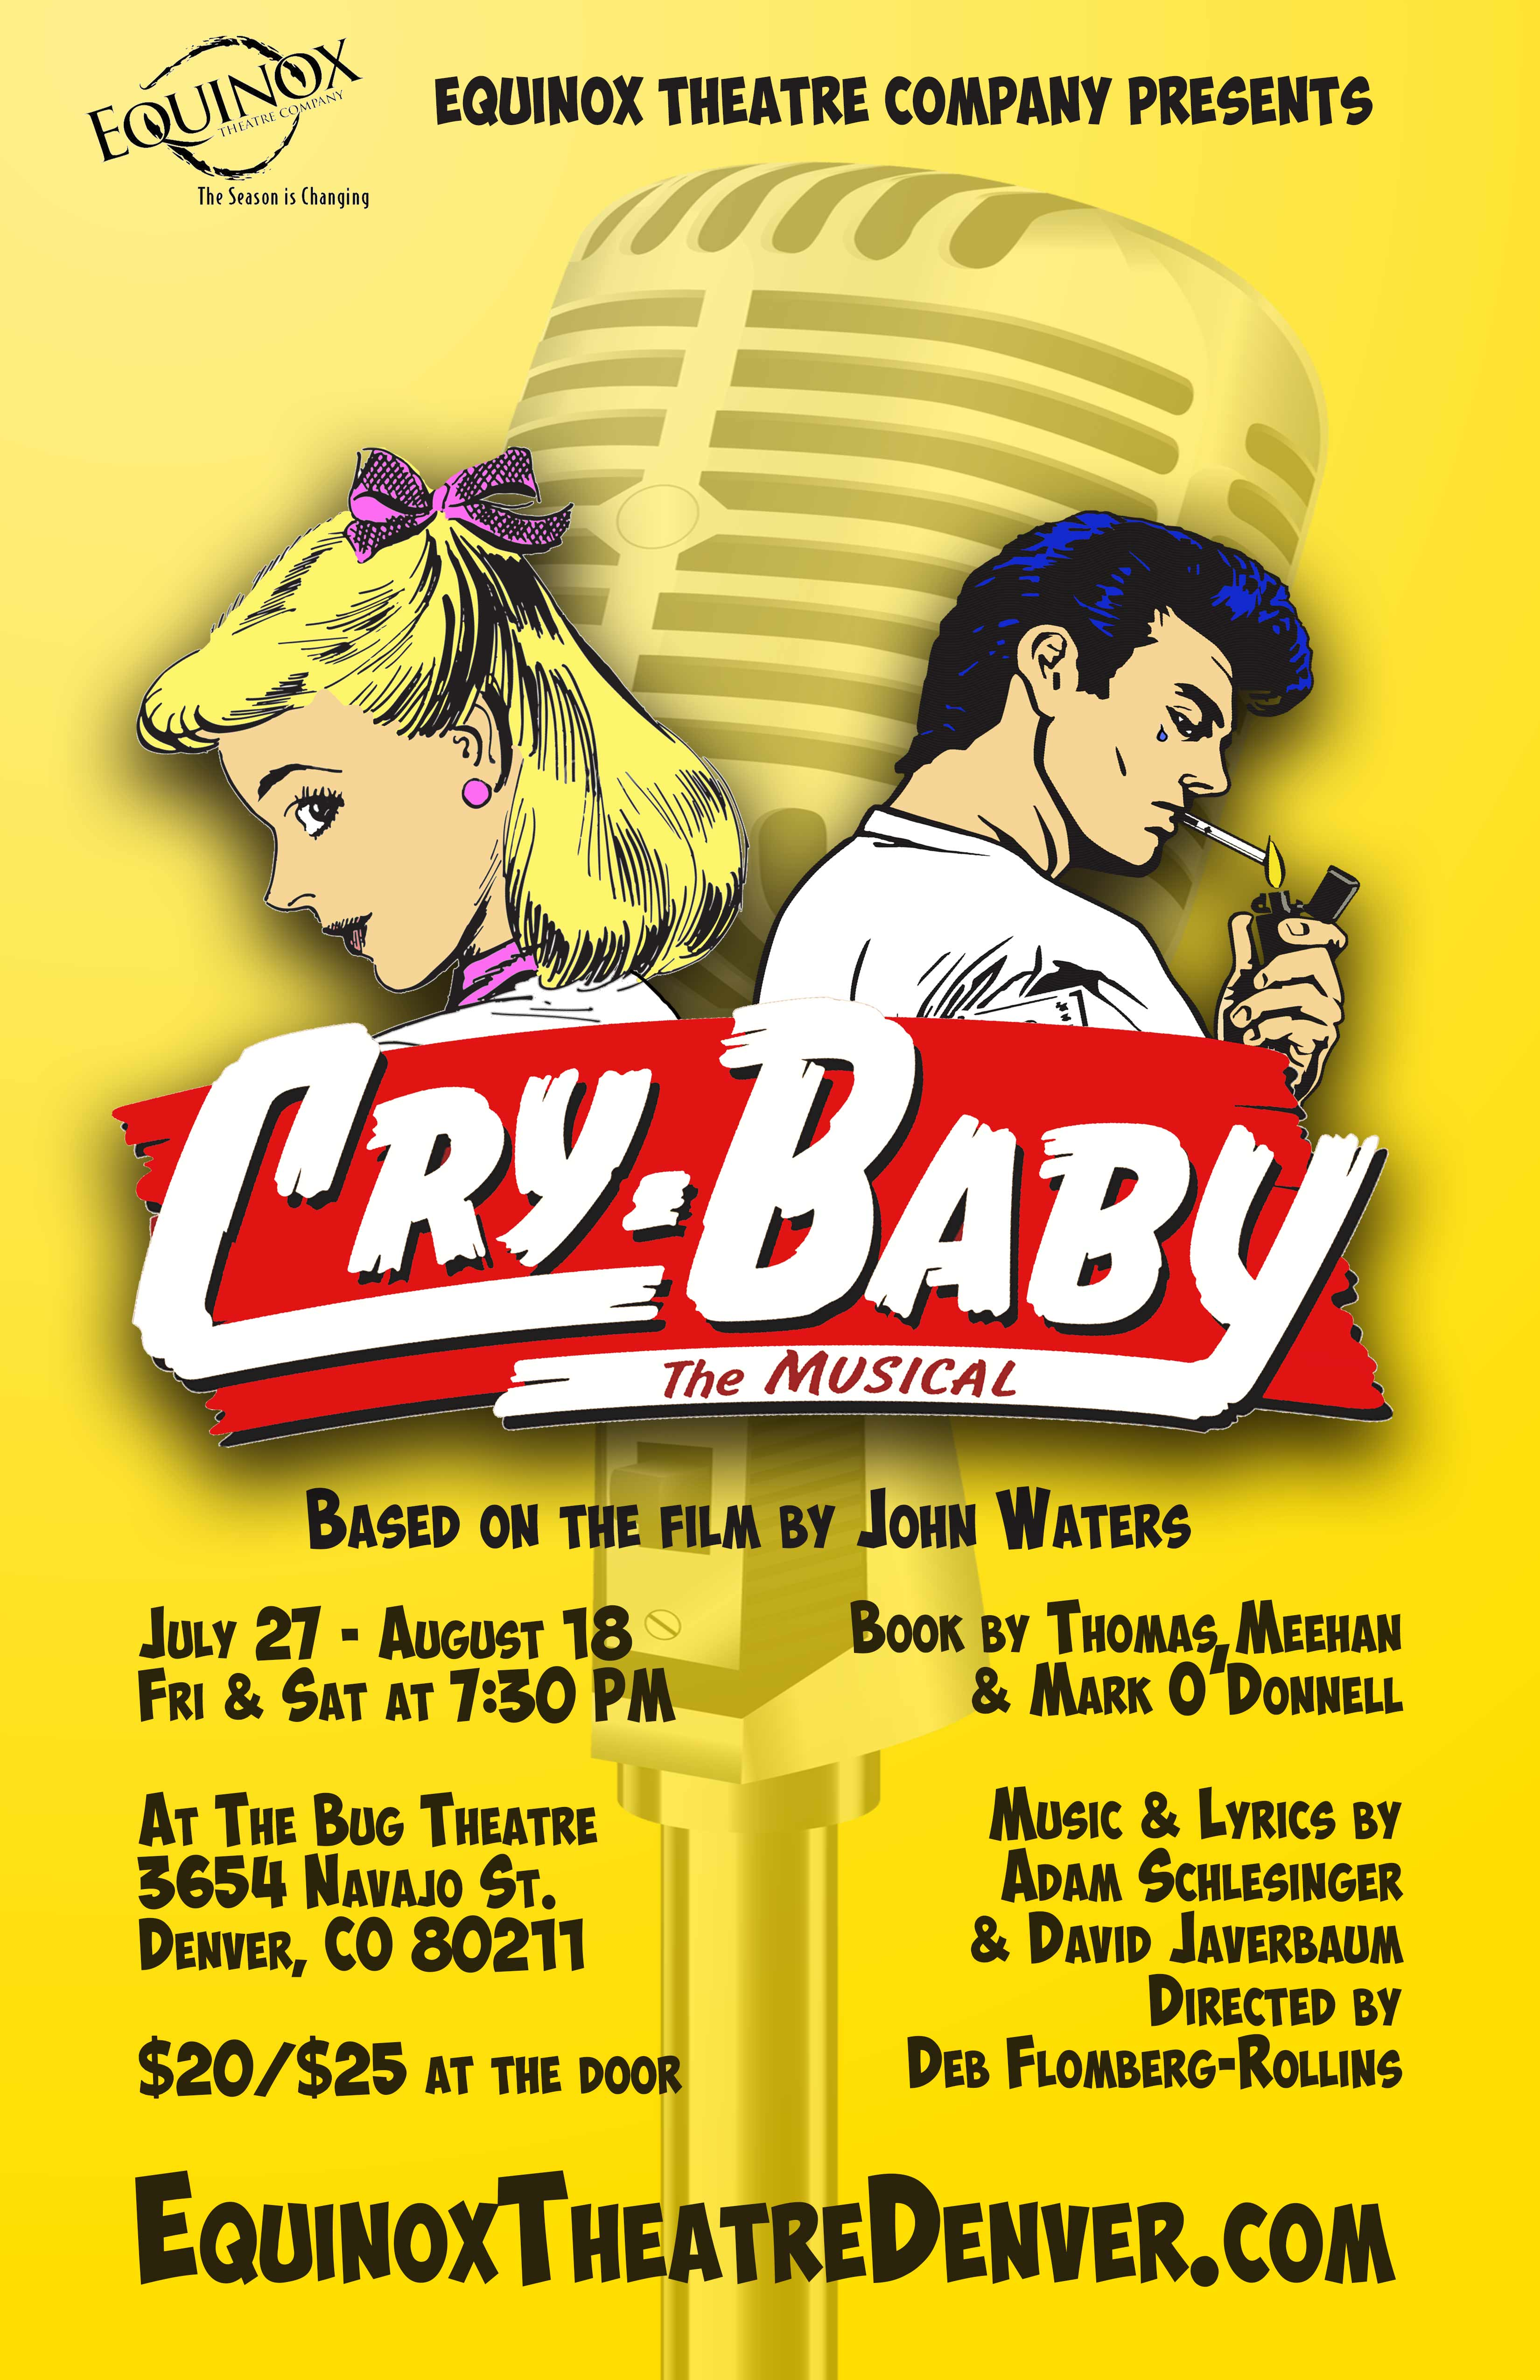 EVENTS: Equinox Theatre Company Presents the Regional Premiere of Cry-Baby: The Musical Starting July 27th